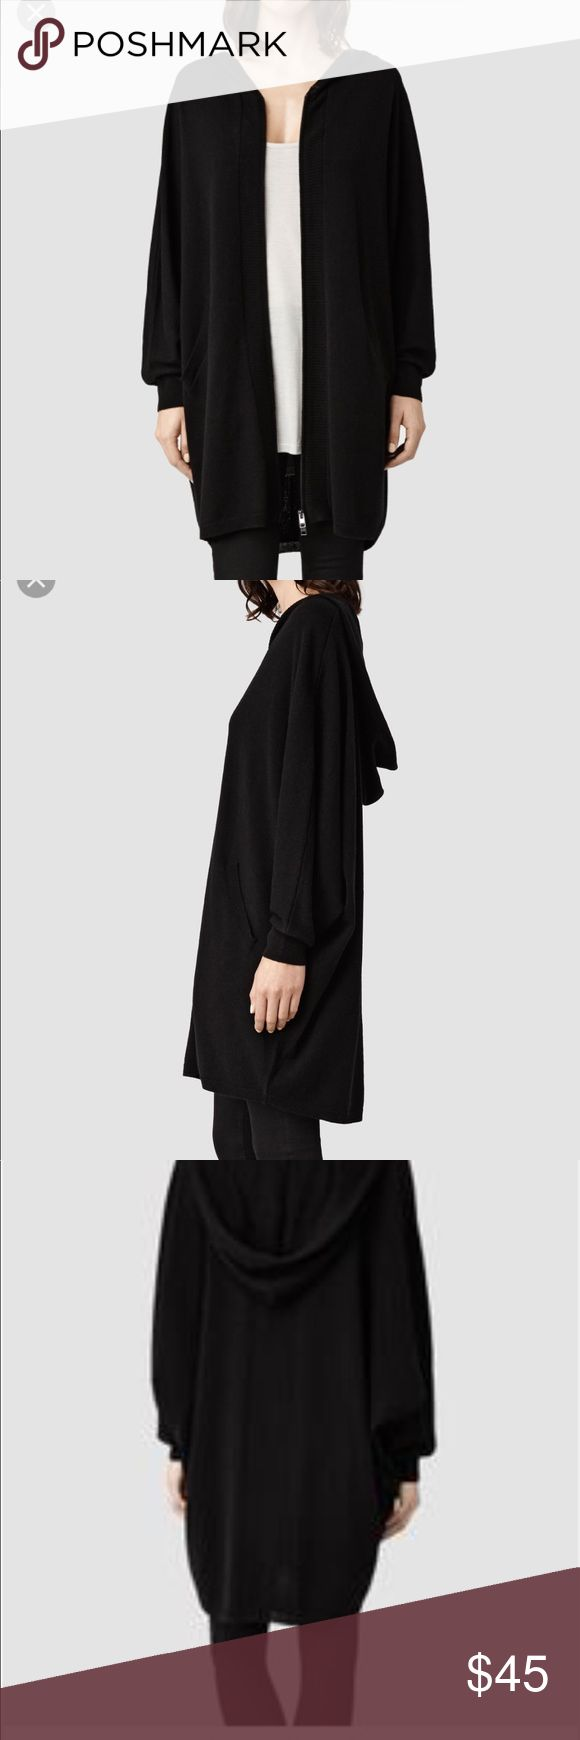 Allsaints Cambar knit hoody Black knit hoody. Double zipper up the front. Can zip from top or zip from bottom. Worn once. All Saints Sweaters